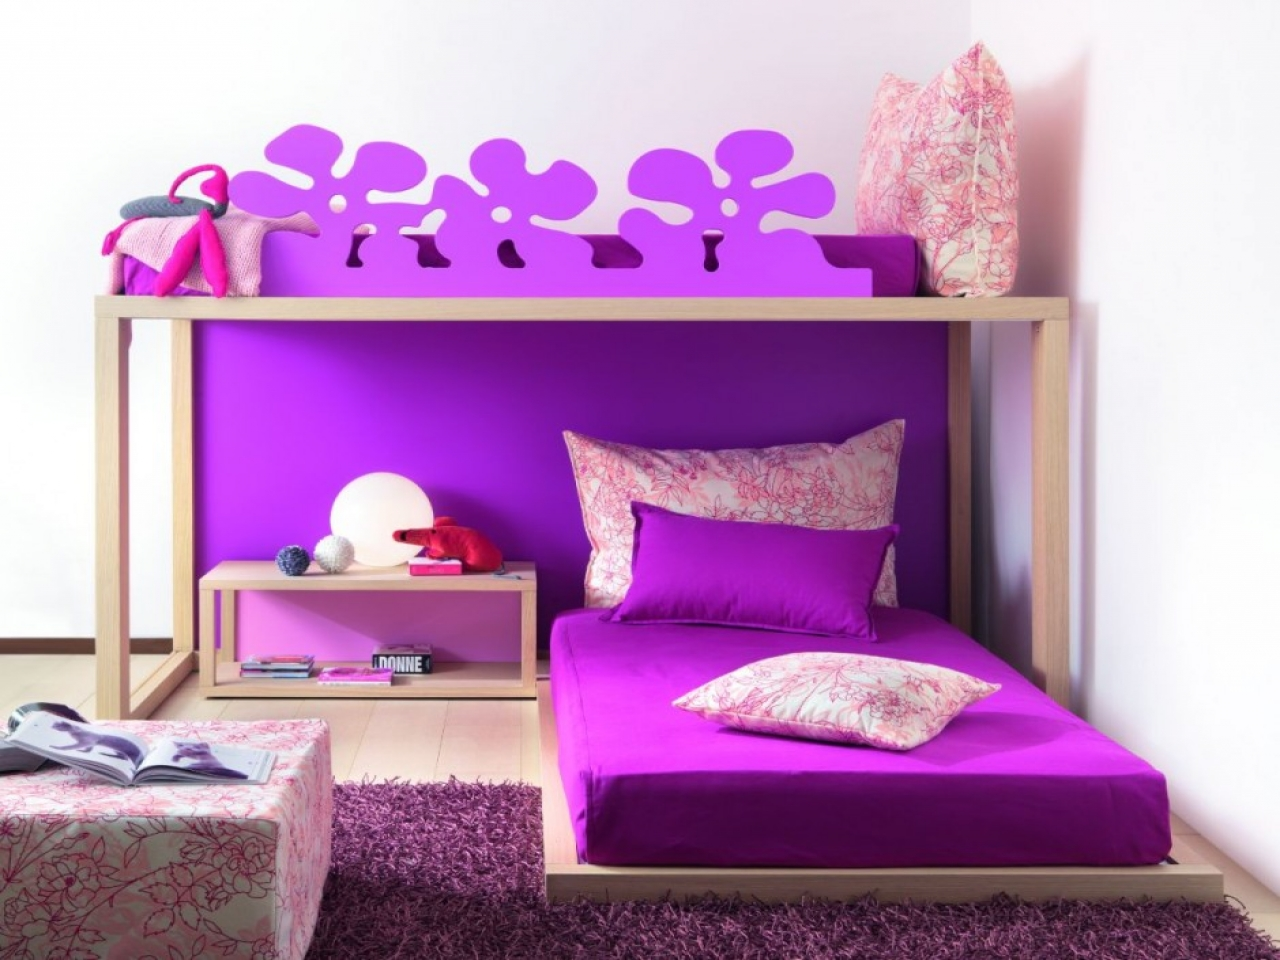 Cute bedroom for girls bahay ofw - Cute bedroom ...